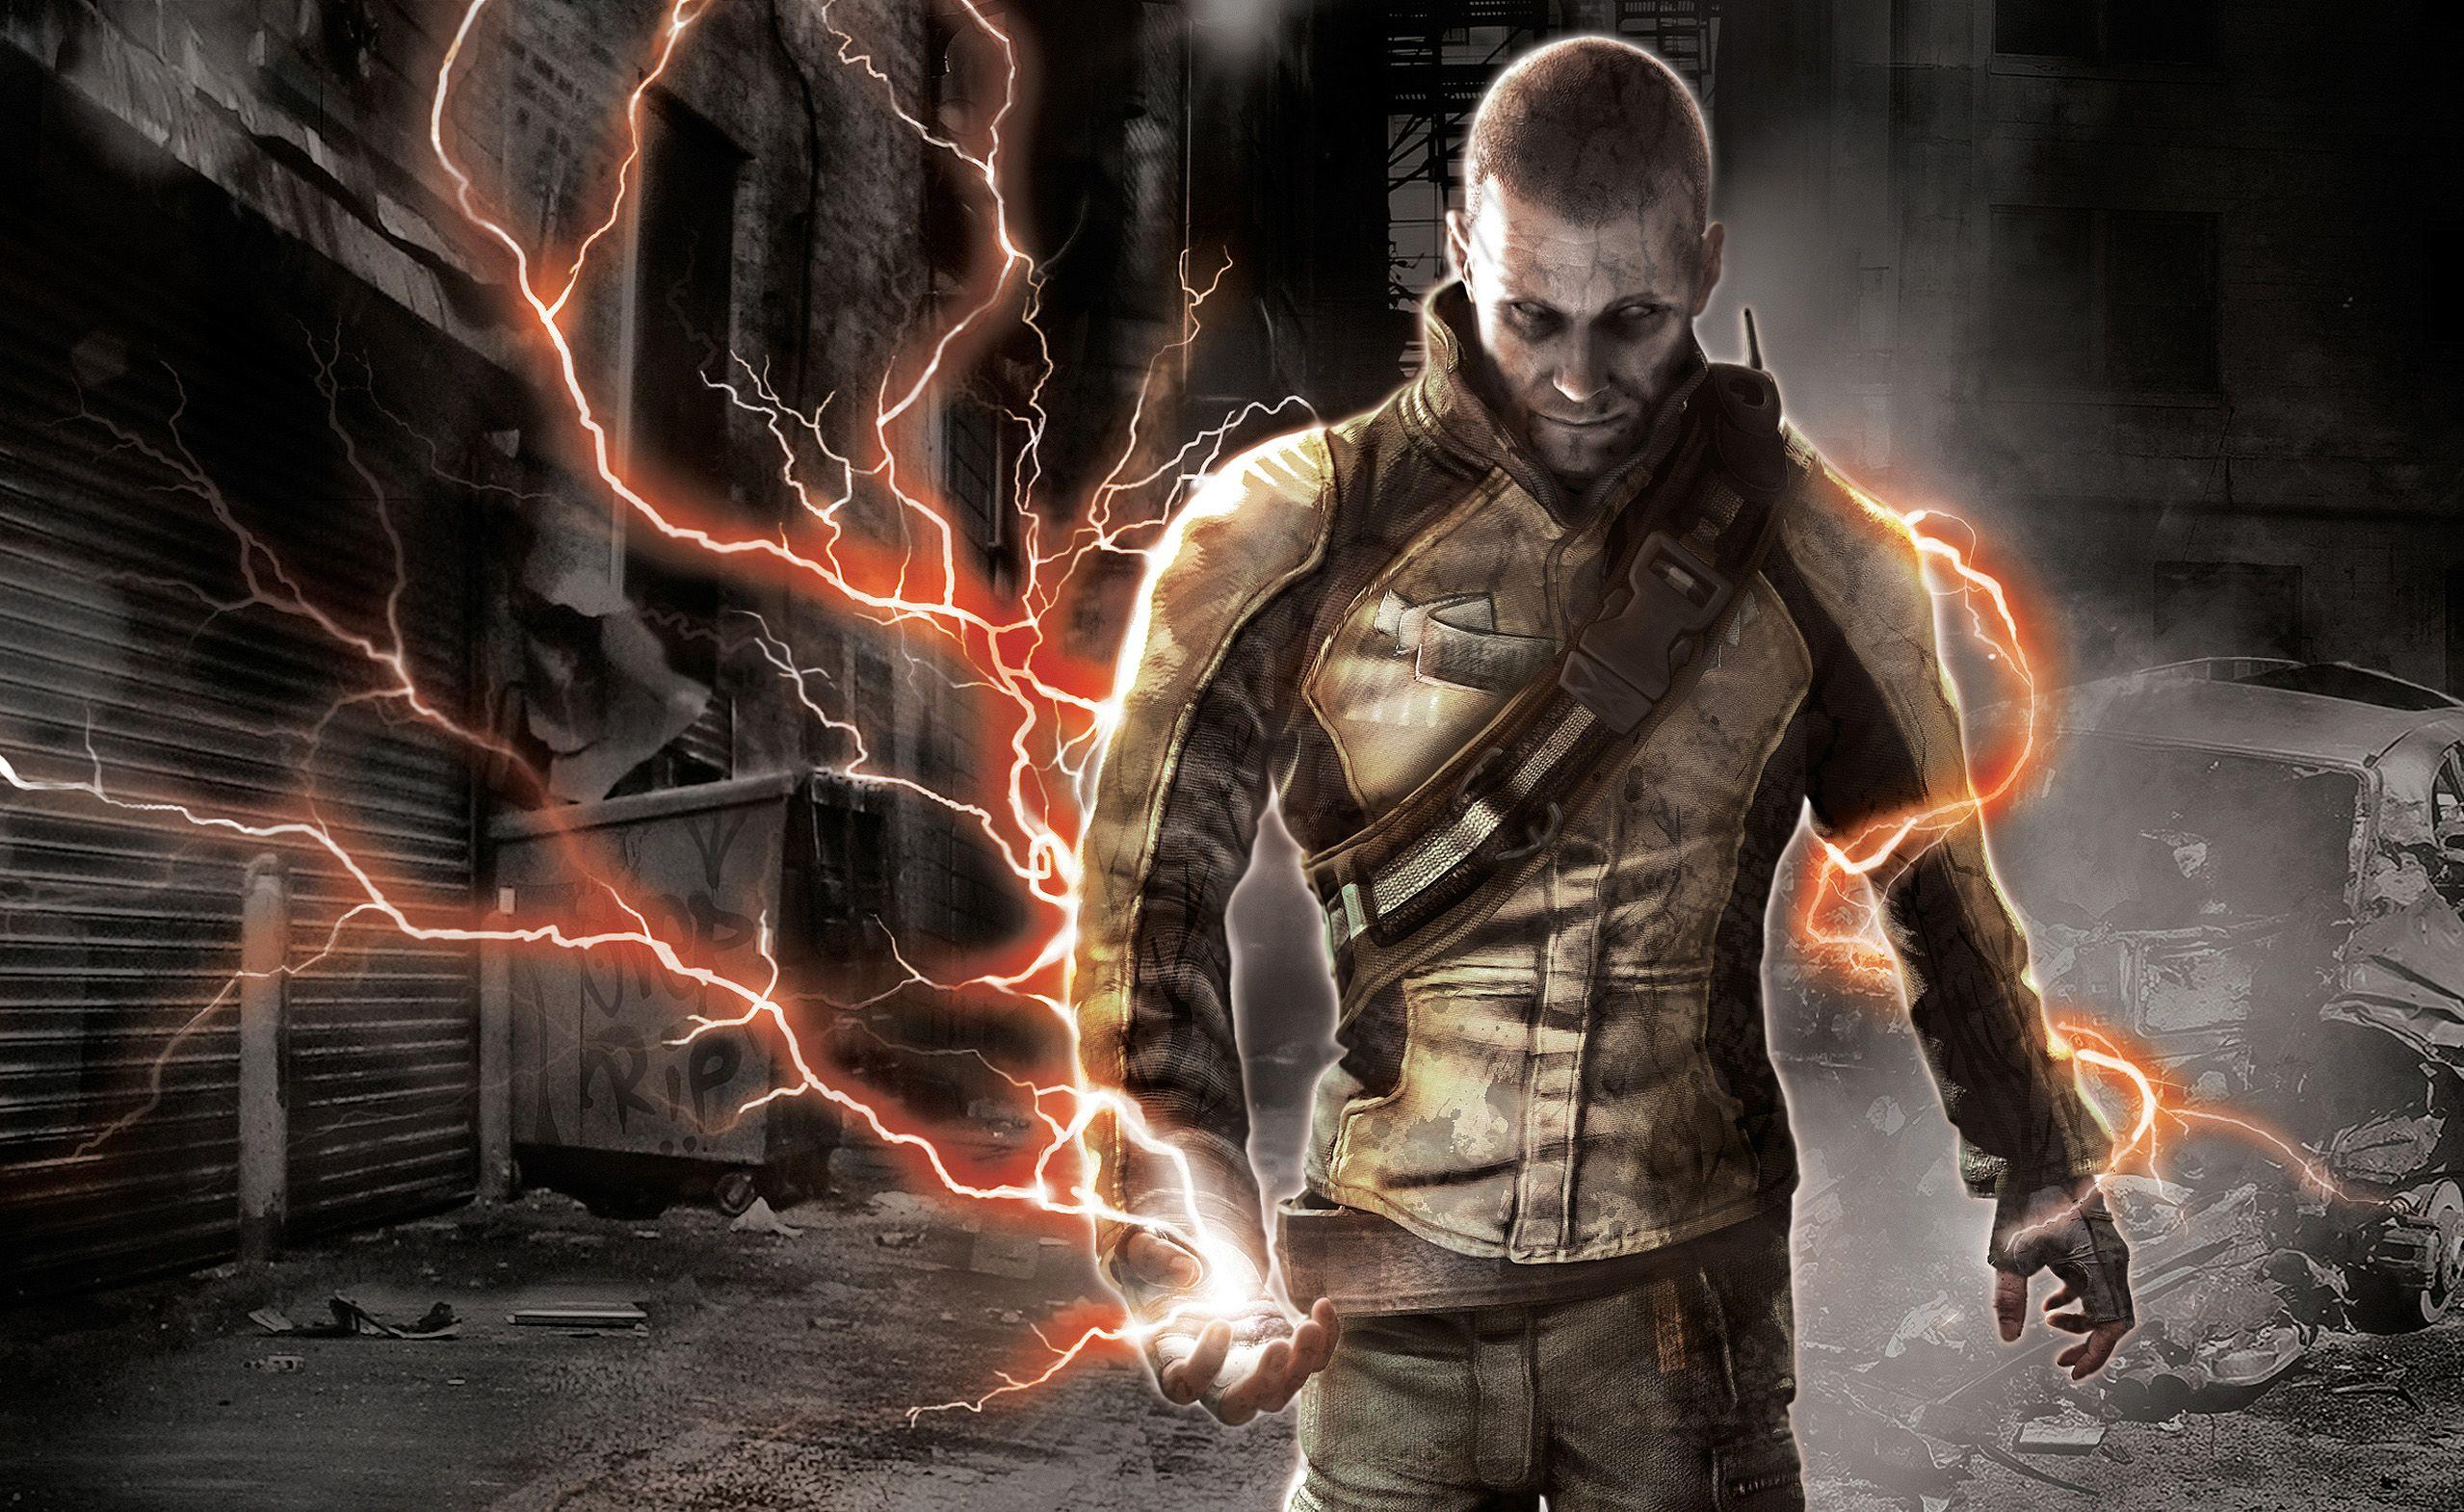 inFAMOUS Full HD Wallpapers and Backgrounds Image